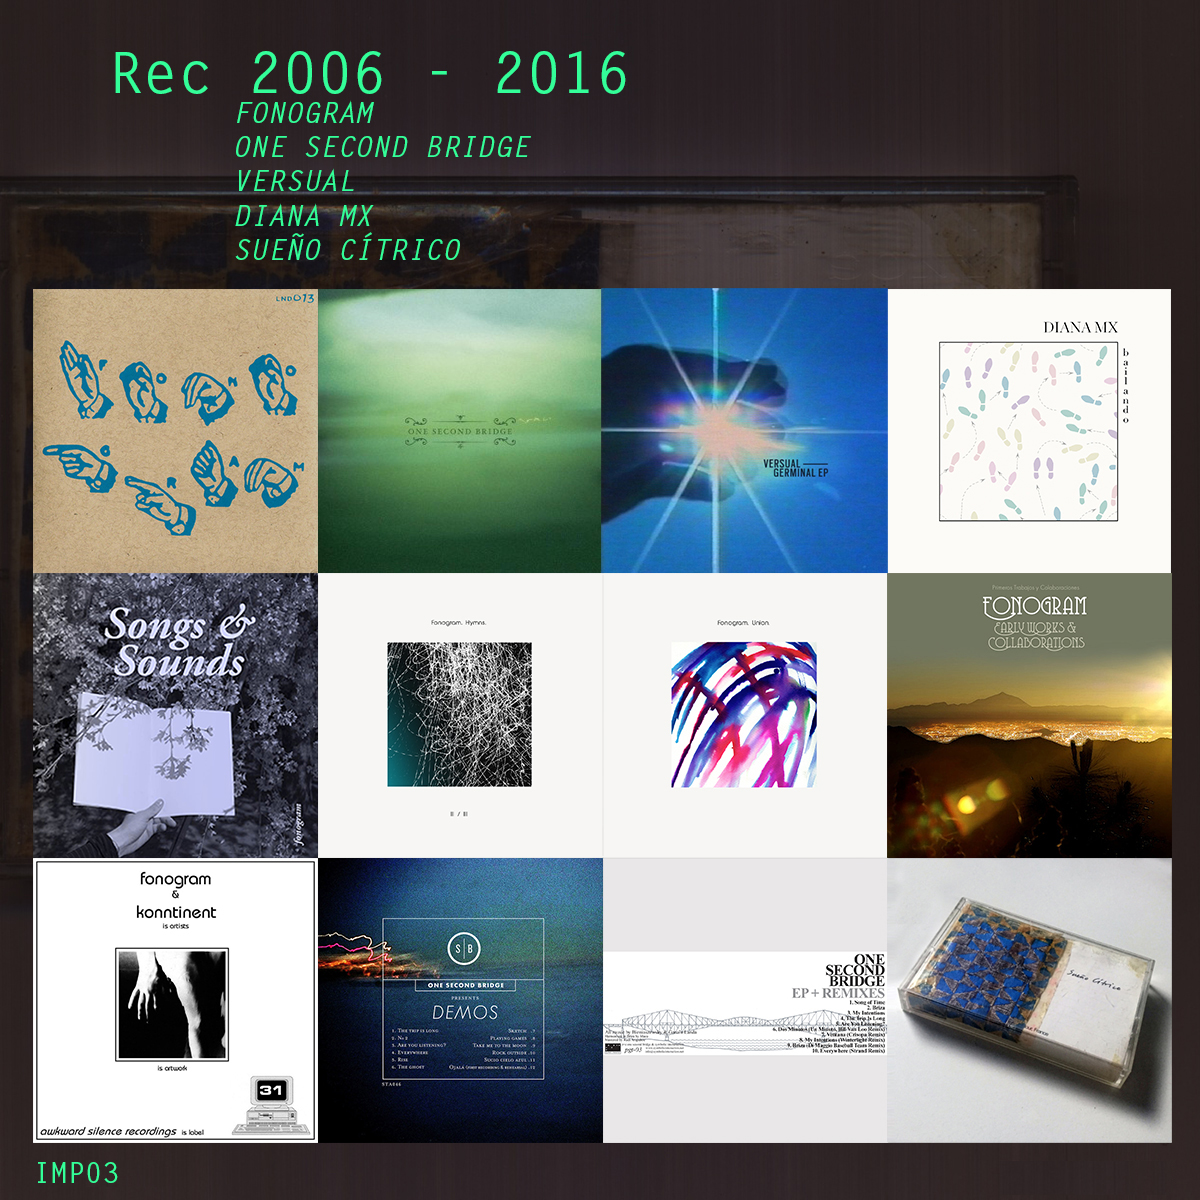 Releases 2006-2016